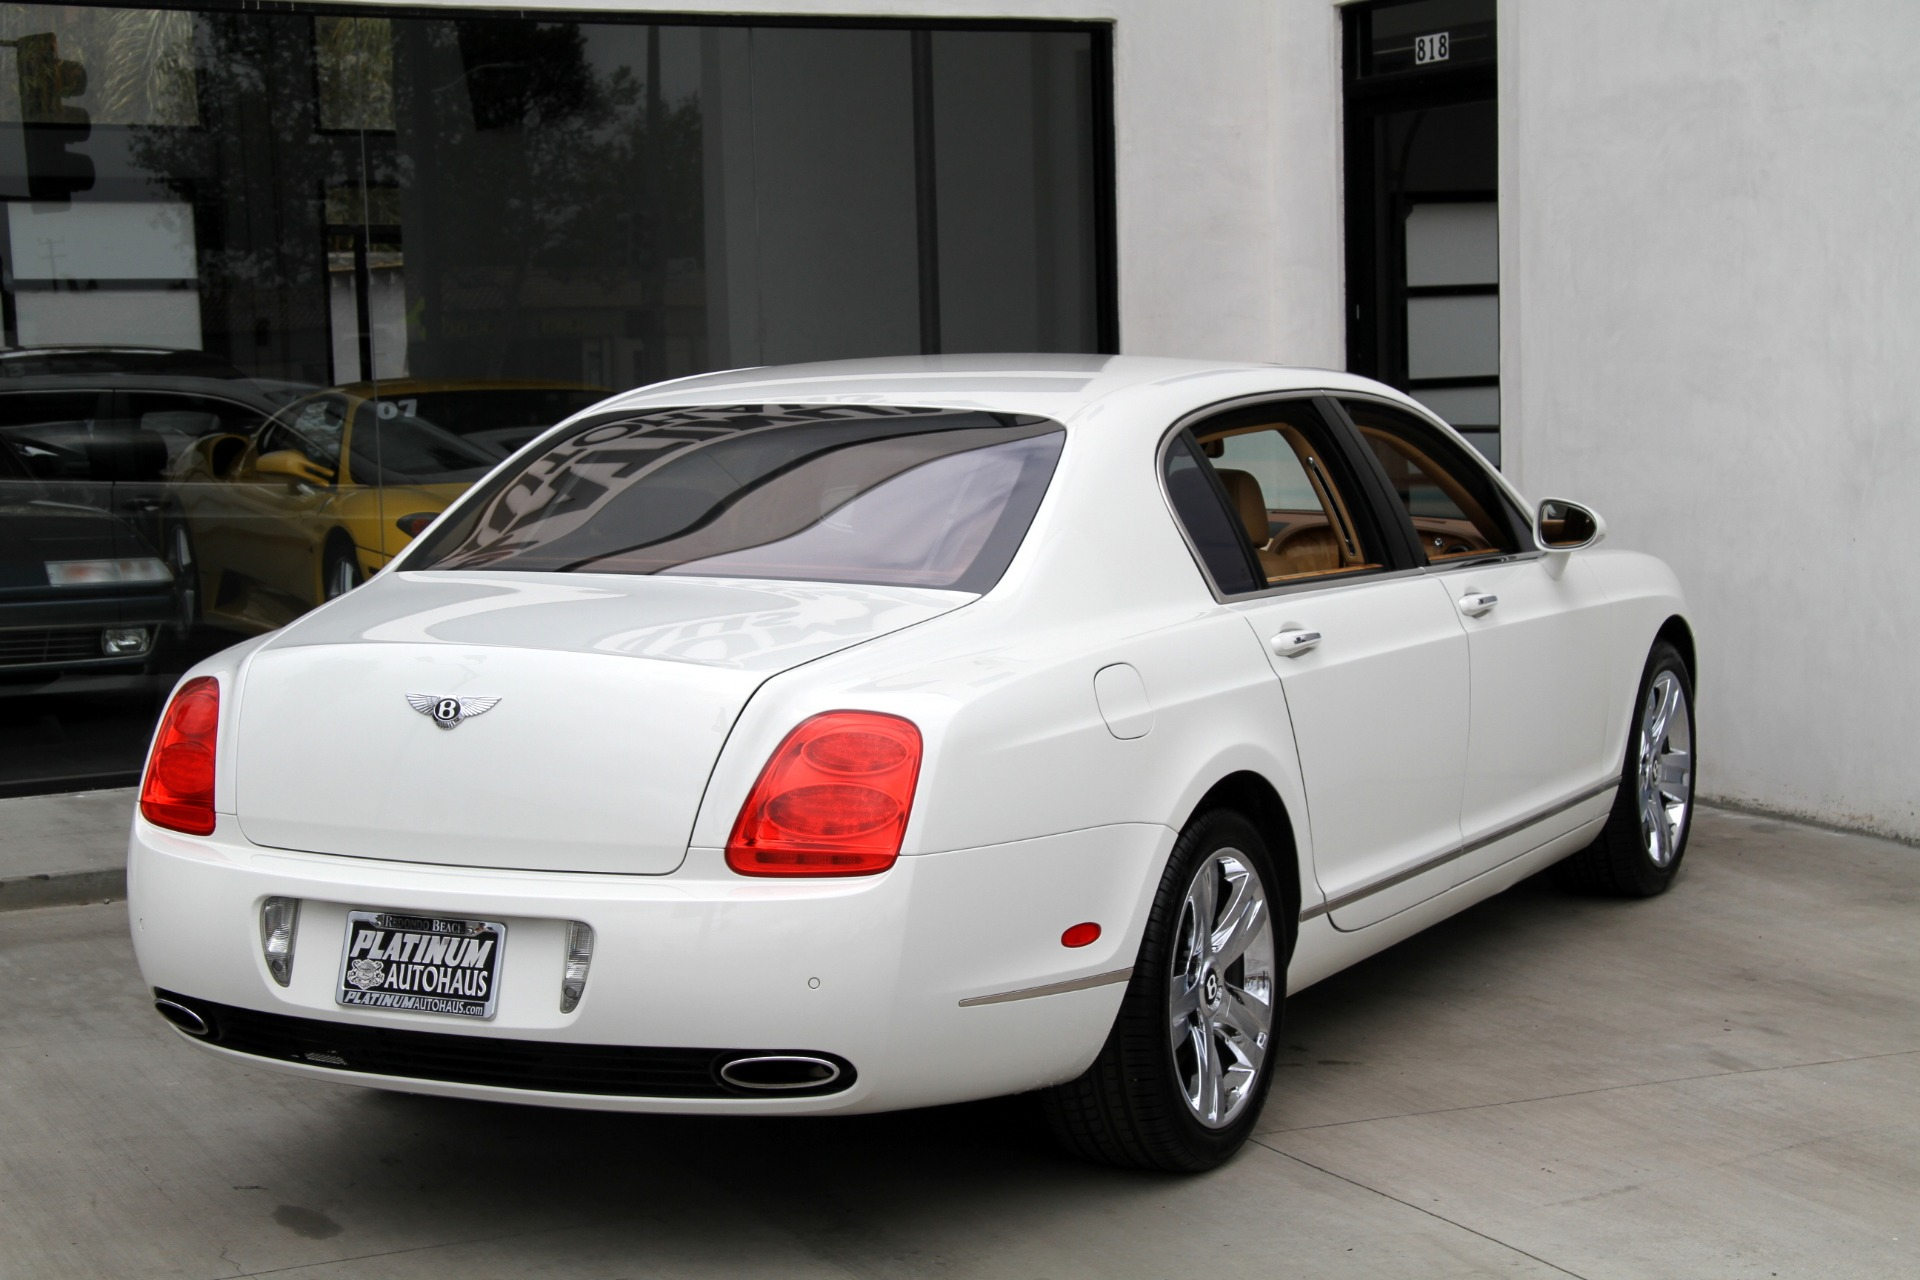 2007 bentley continental flying spur low miles stock 6123a for sale near redondo beach. Black Bedroom Furniture Sets. Home Design Ideas